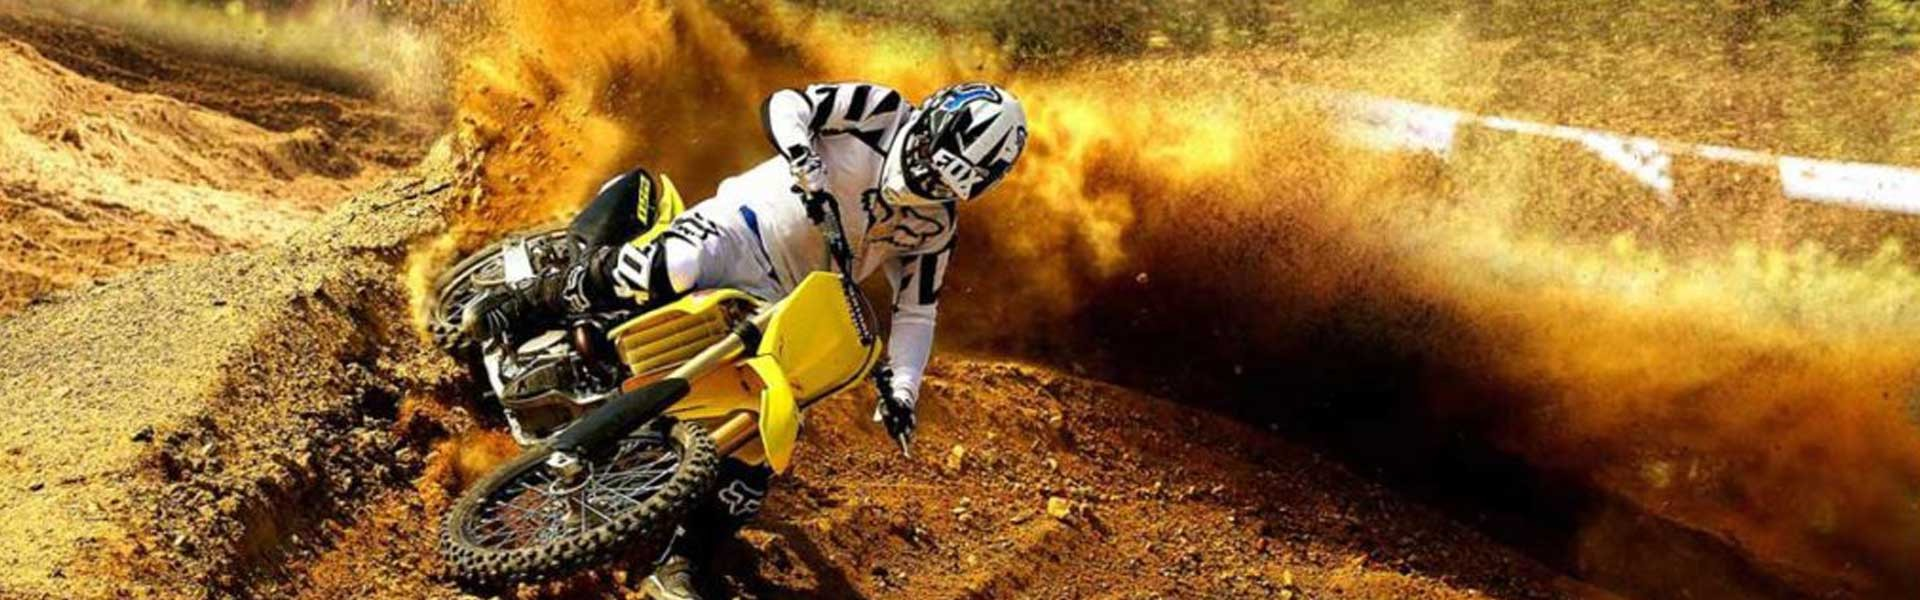 Motocross - Life is dirty!